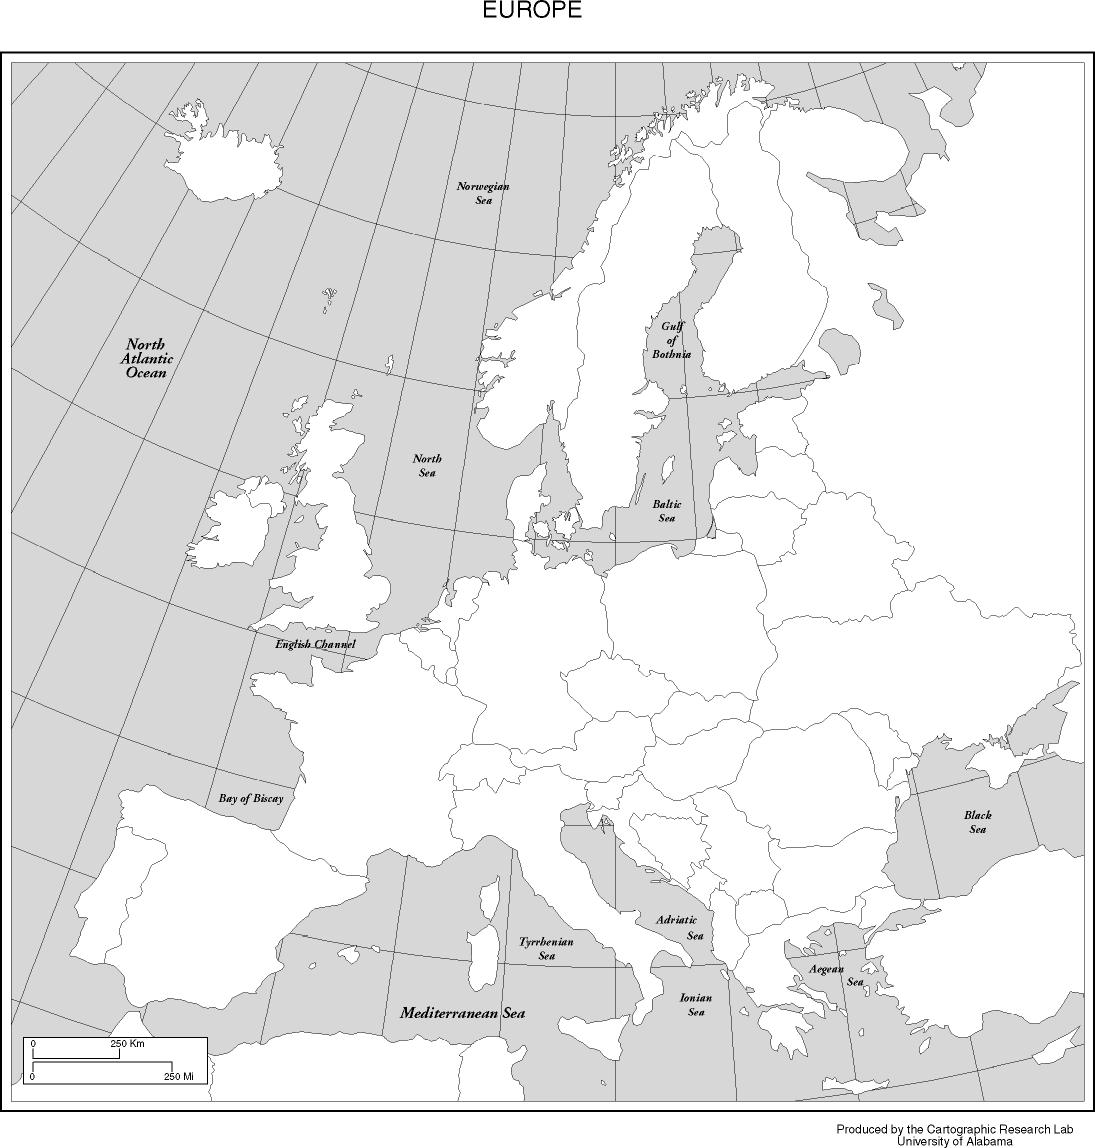 Honors Euro LA Classwork MR DORANS WEBSITE - Blank map of the world for students